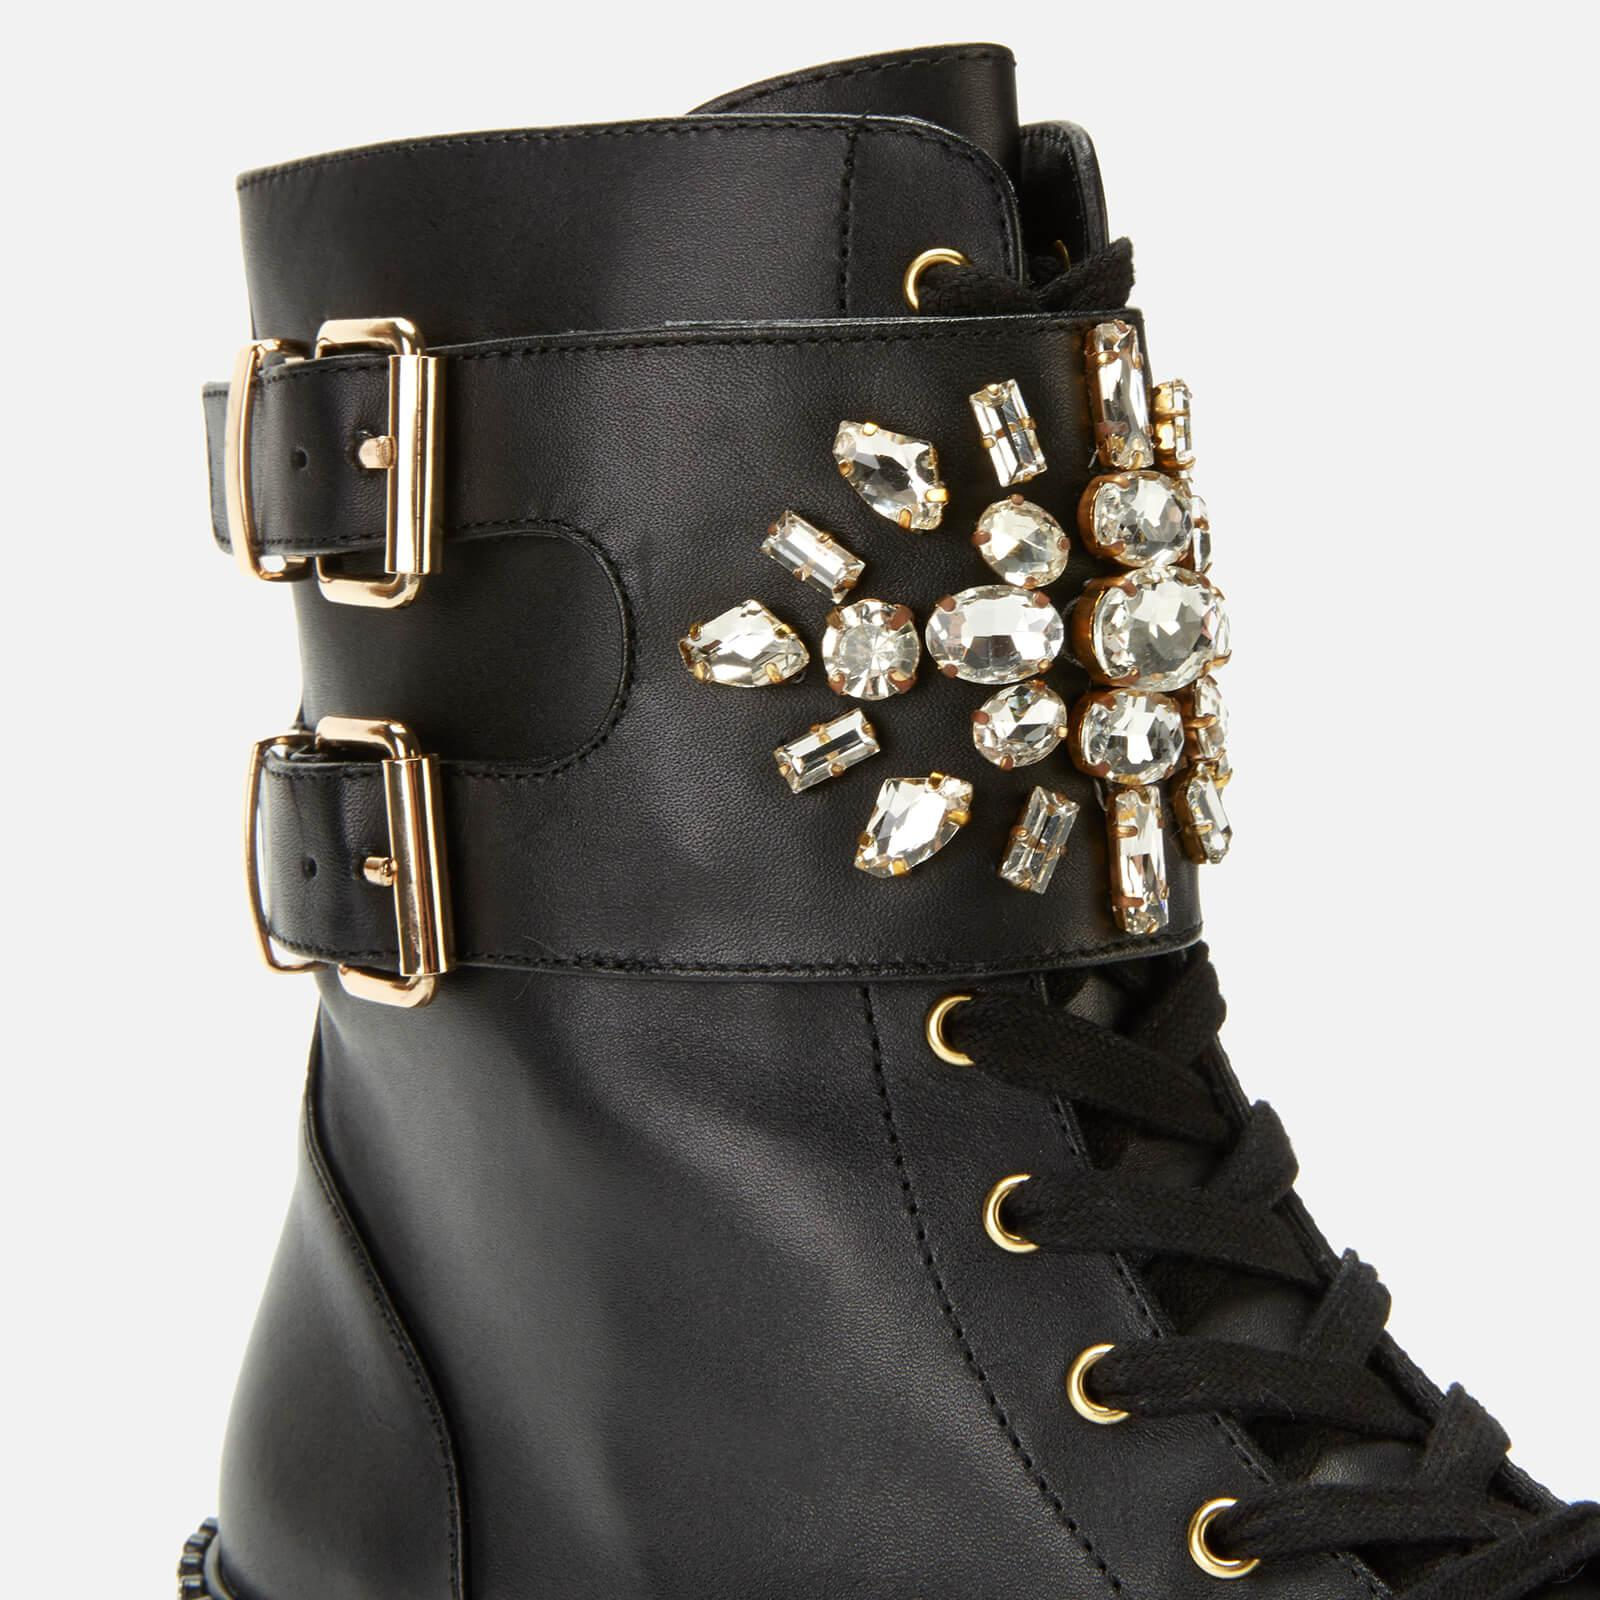 6b0611add6304 Kurt Geiger Stoop Leather Lace Up Boots in Black - Save 43% - Lyst